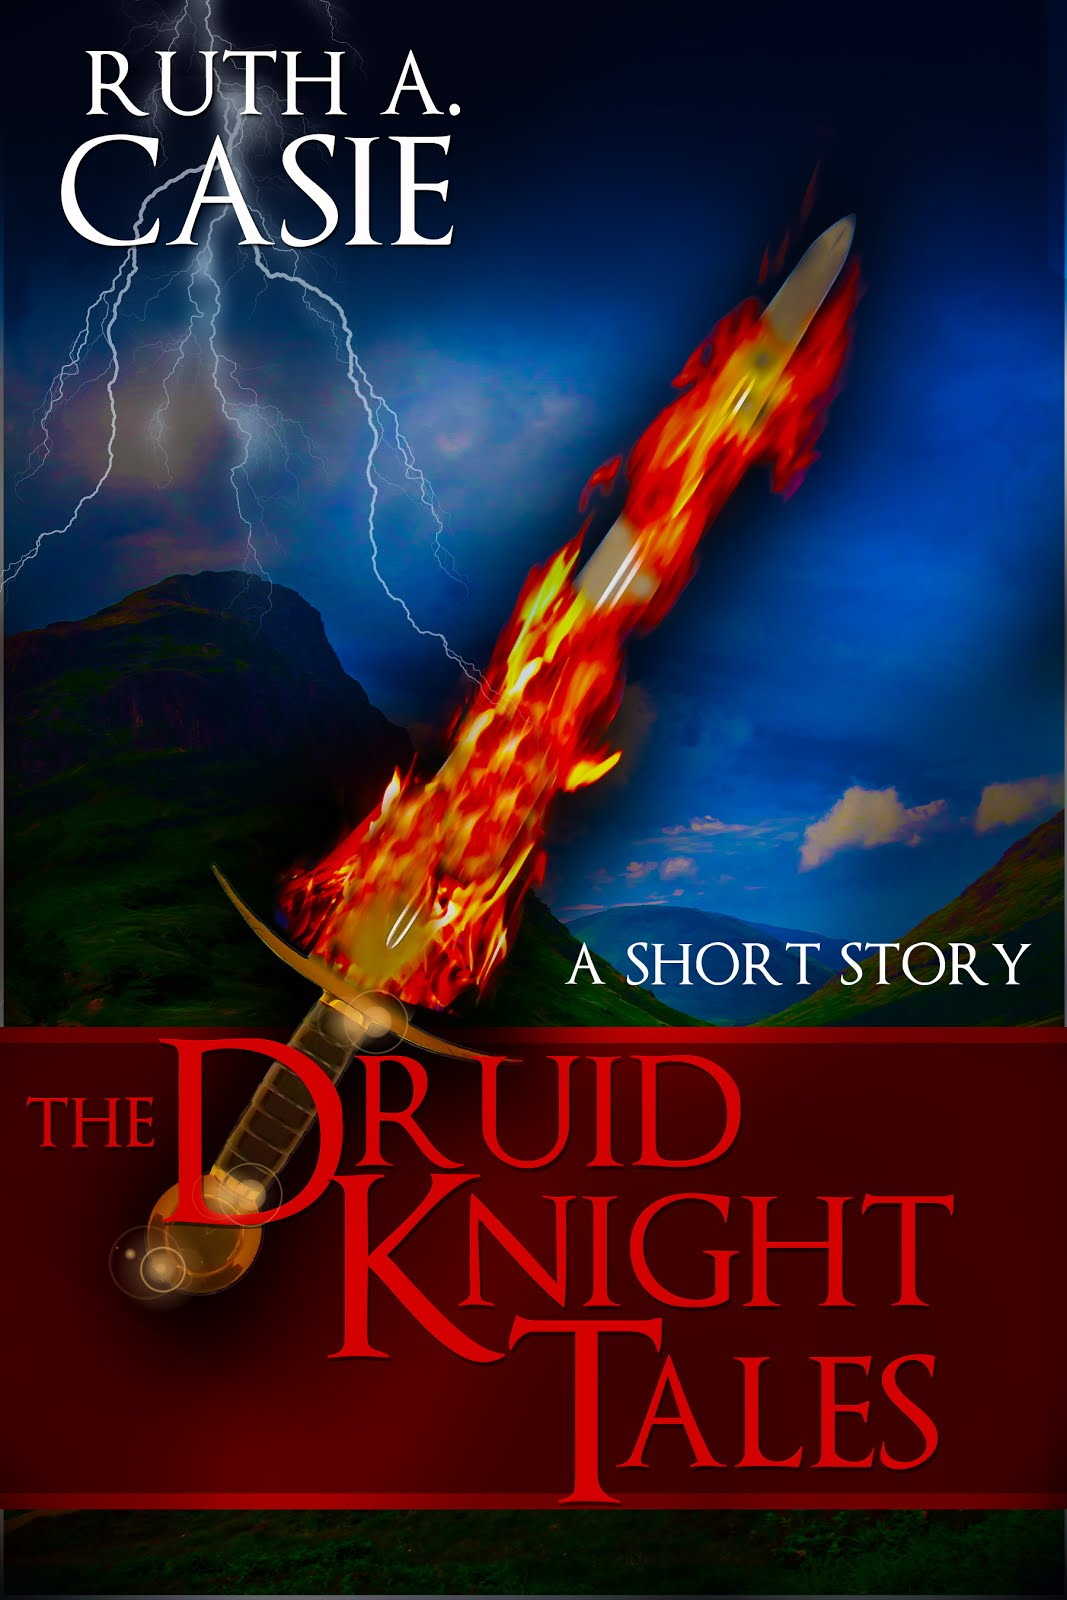 The Druid Knight Tales: A Short Story